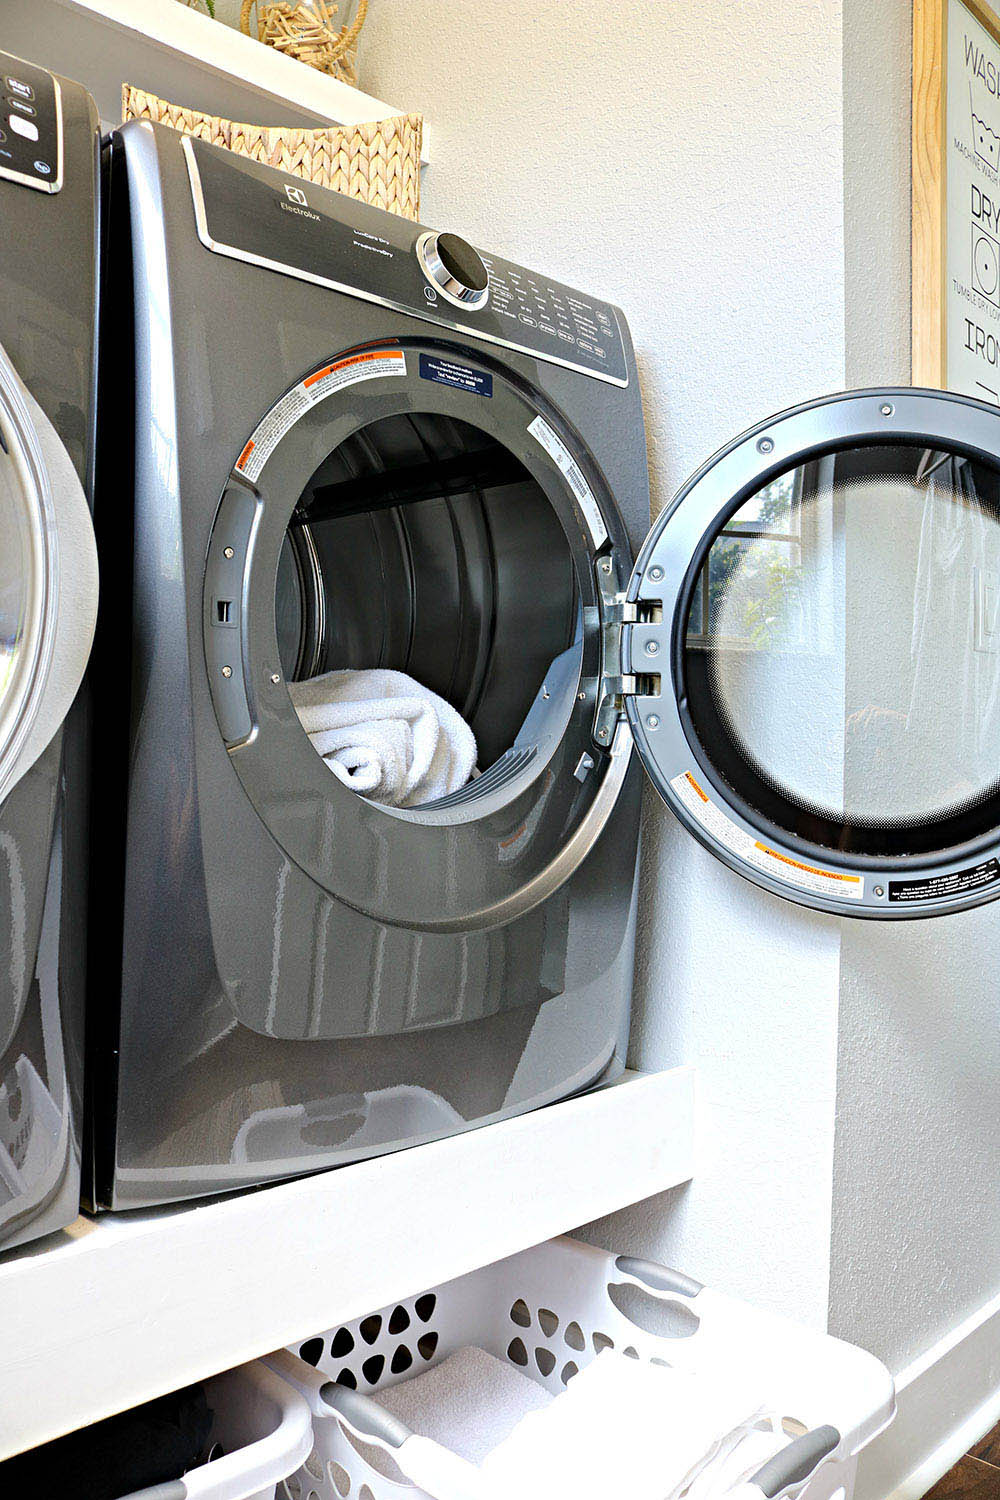 An Electrolux Smart Boost Technology dryer with the door open.